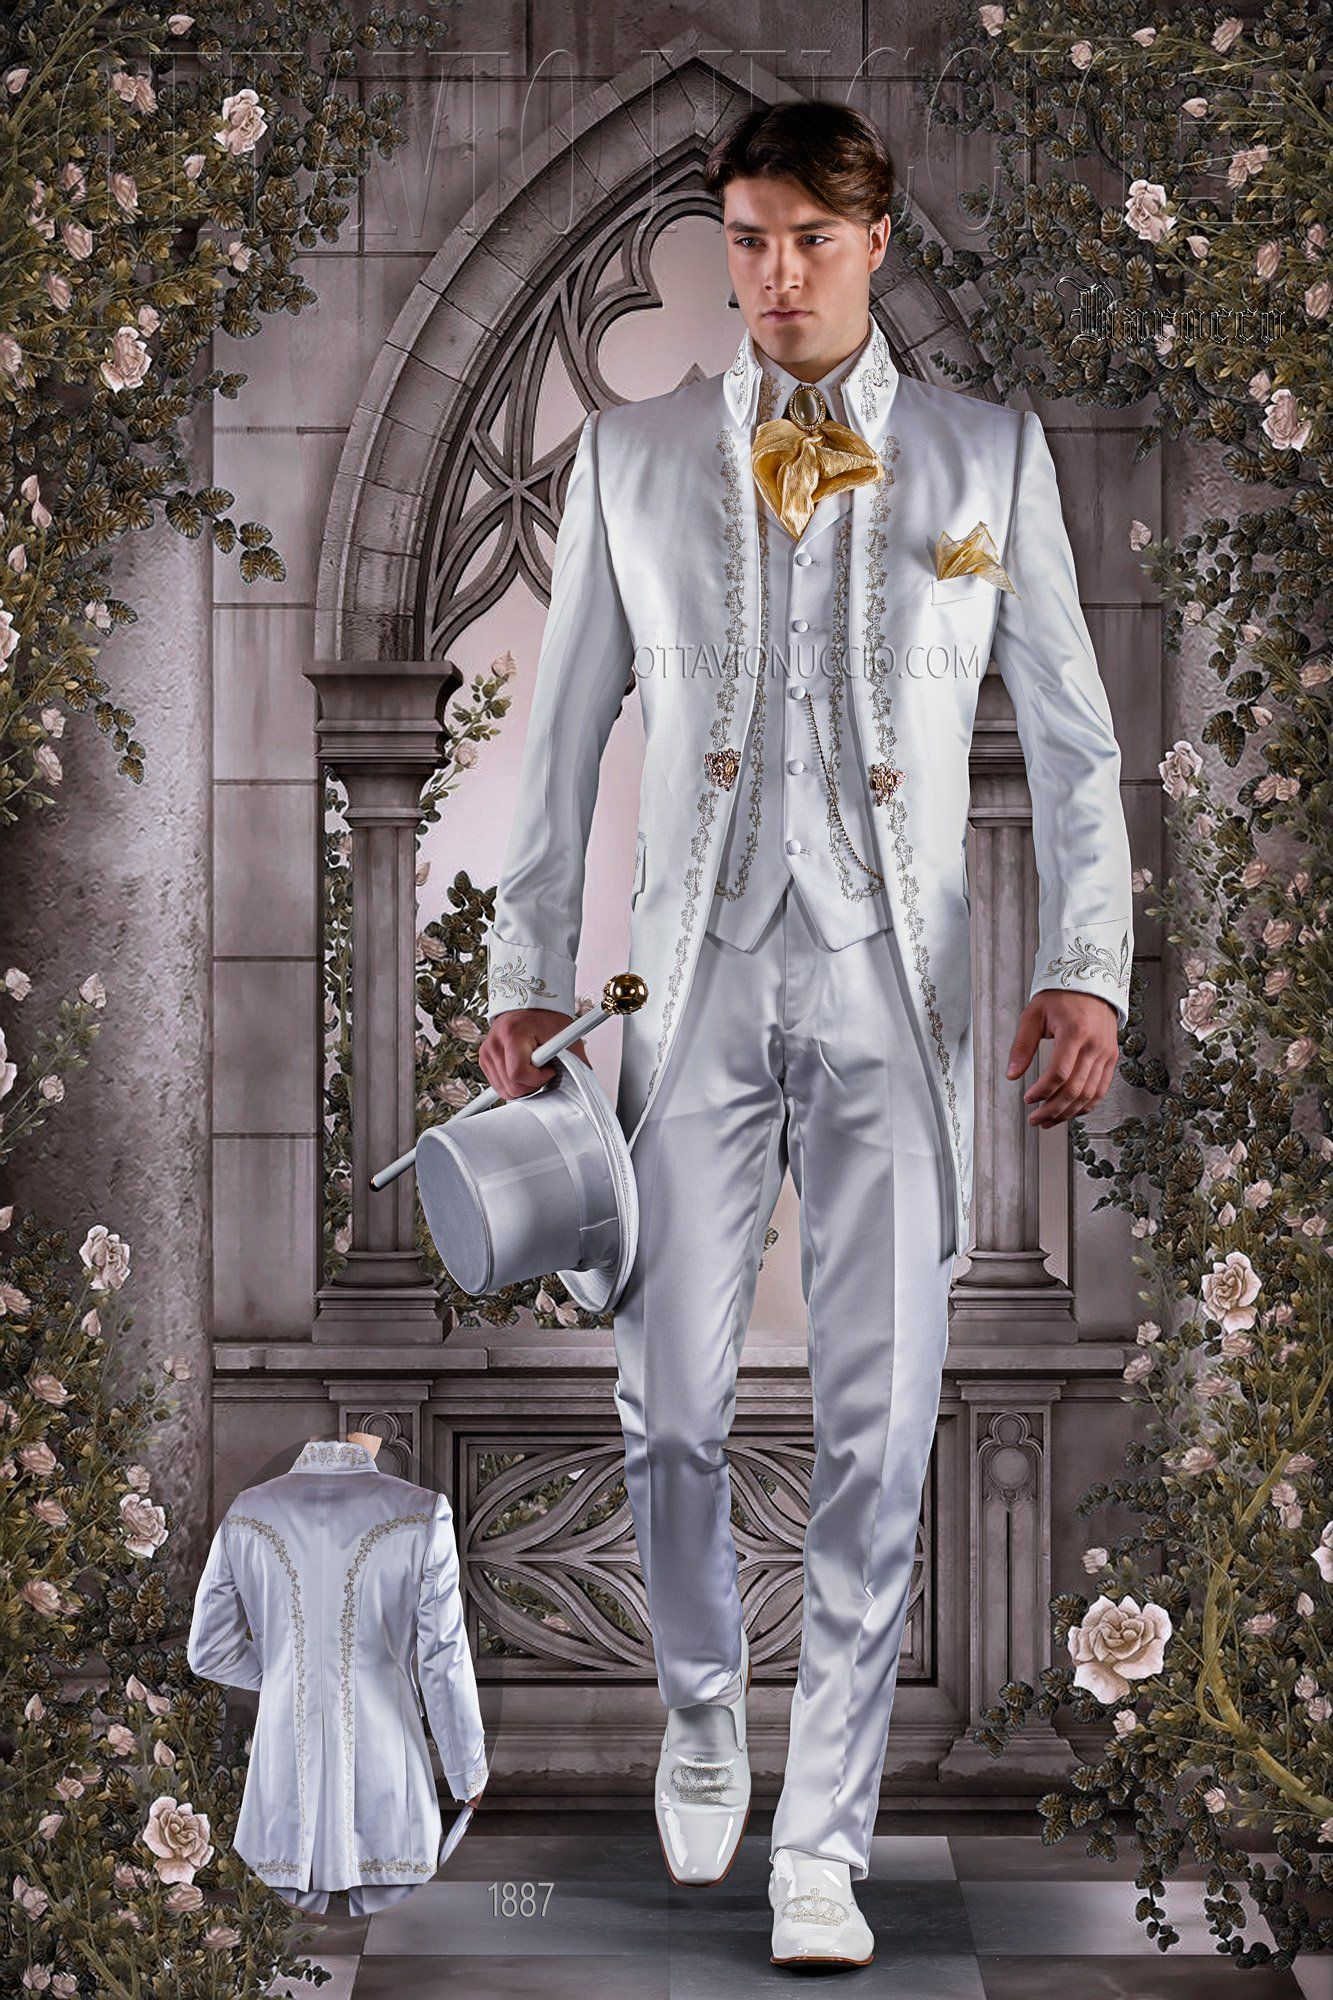 Slim Fit White And Gold Baroque Luxury Suit Vintage Wedding Menswear